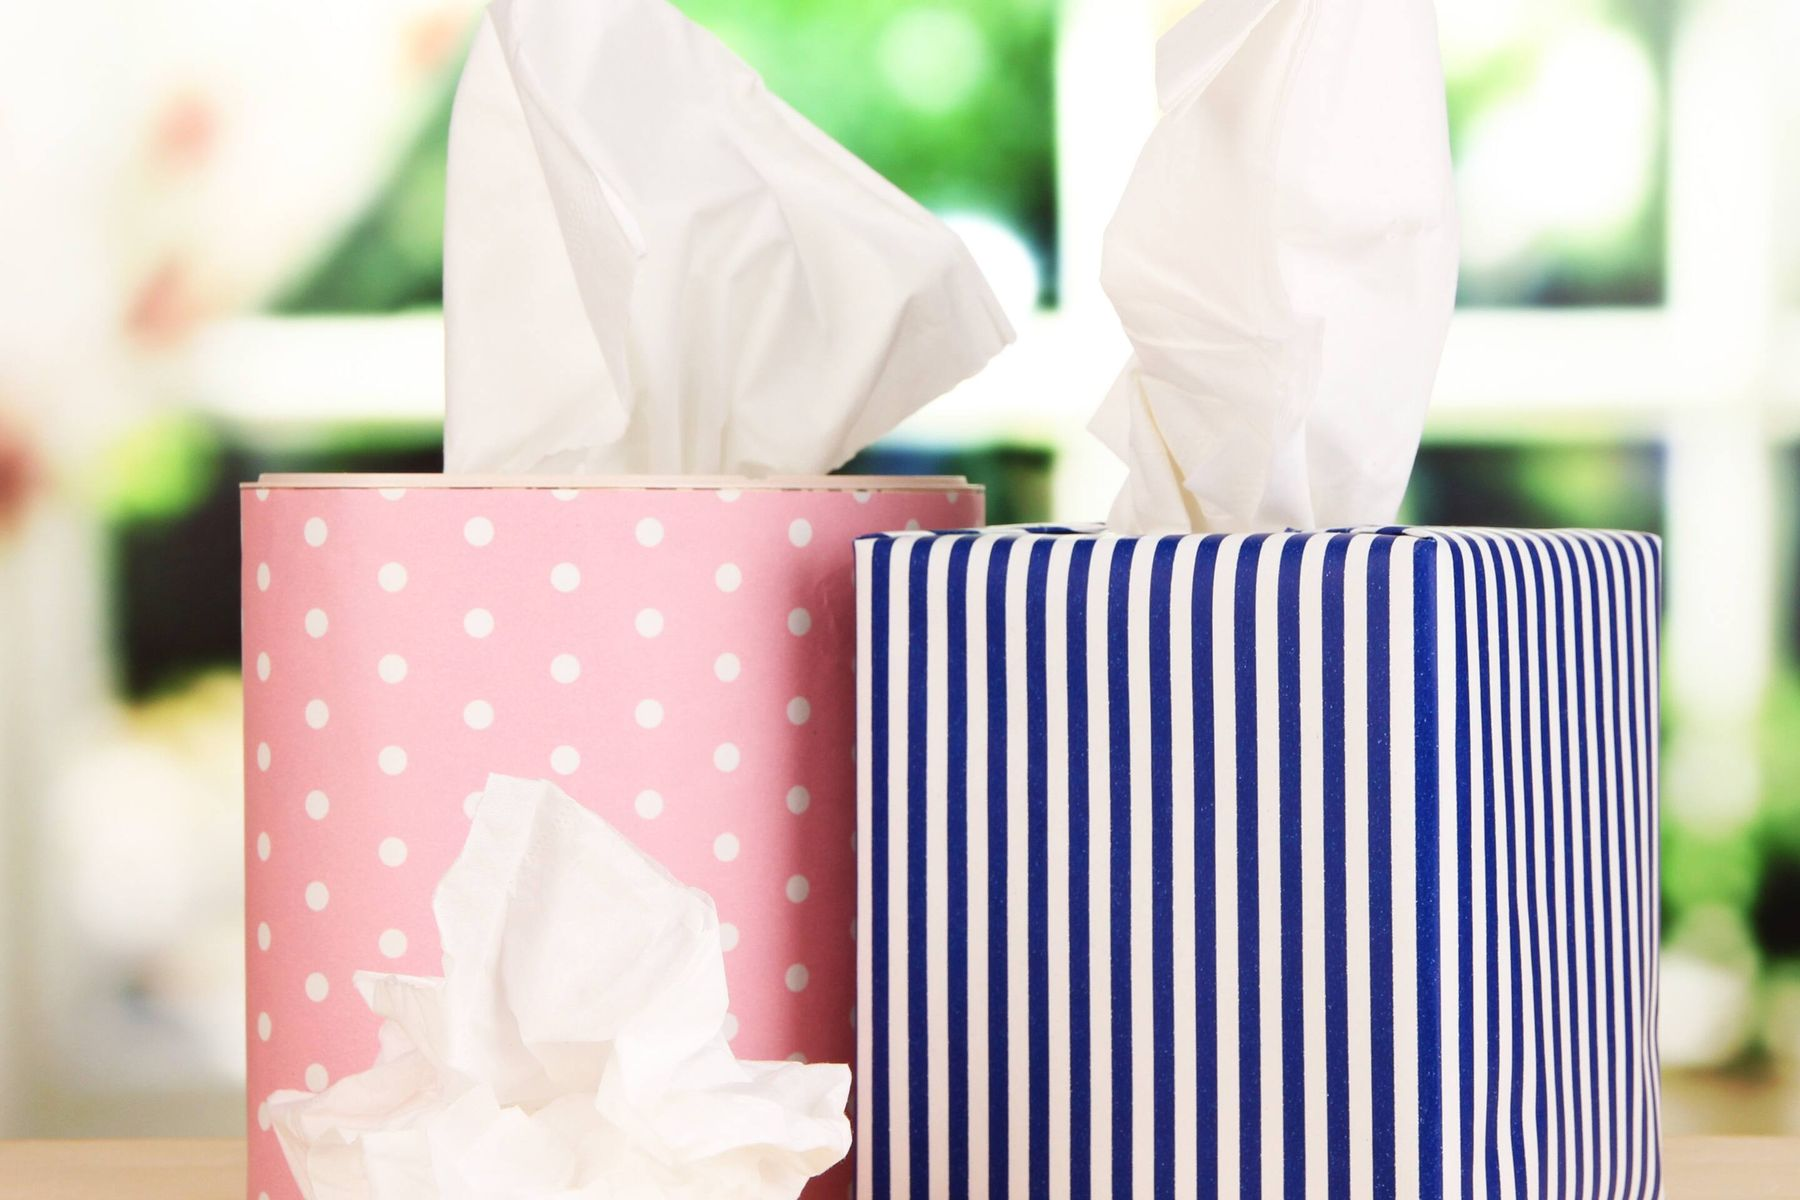 Easy Ways to Make Baby Wipes at Home | Cleanipedia